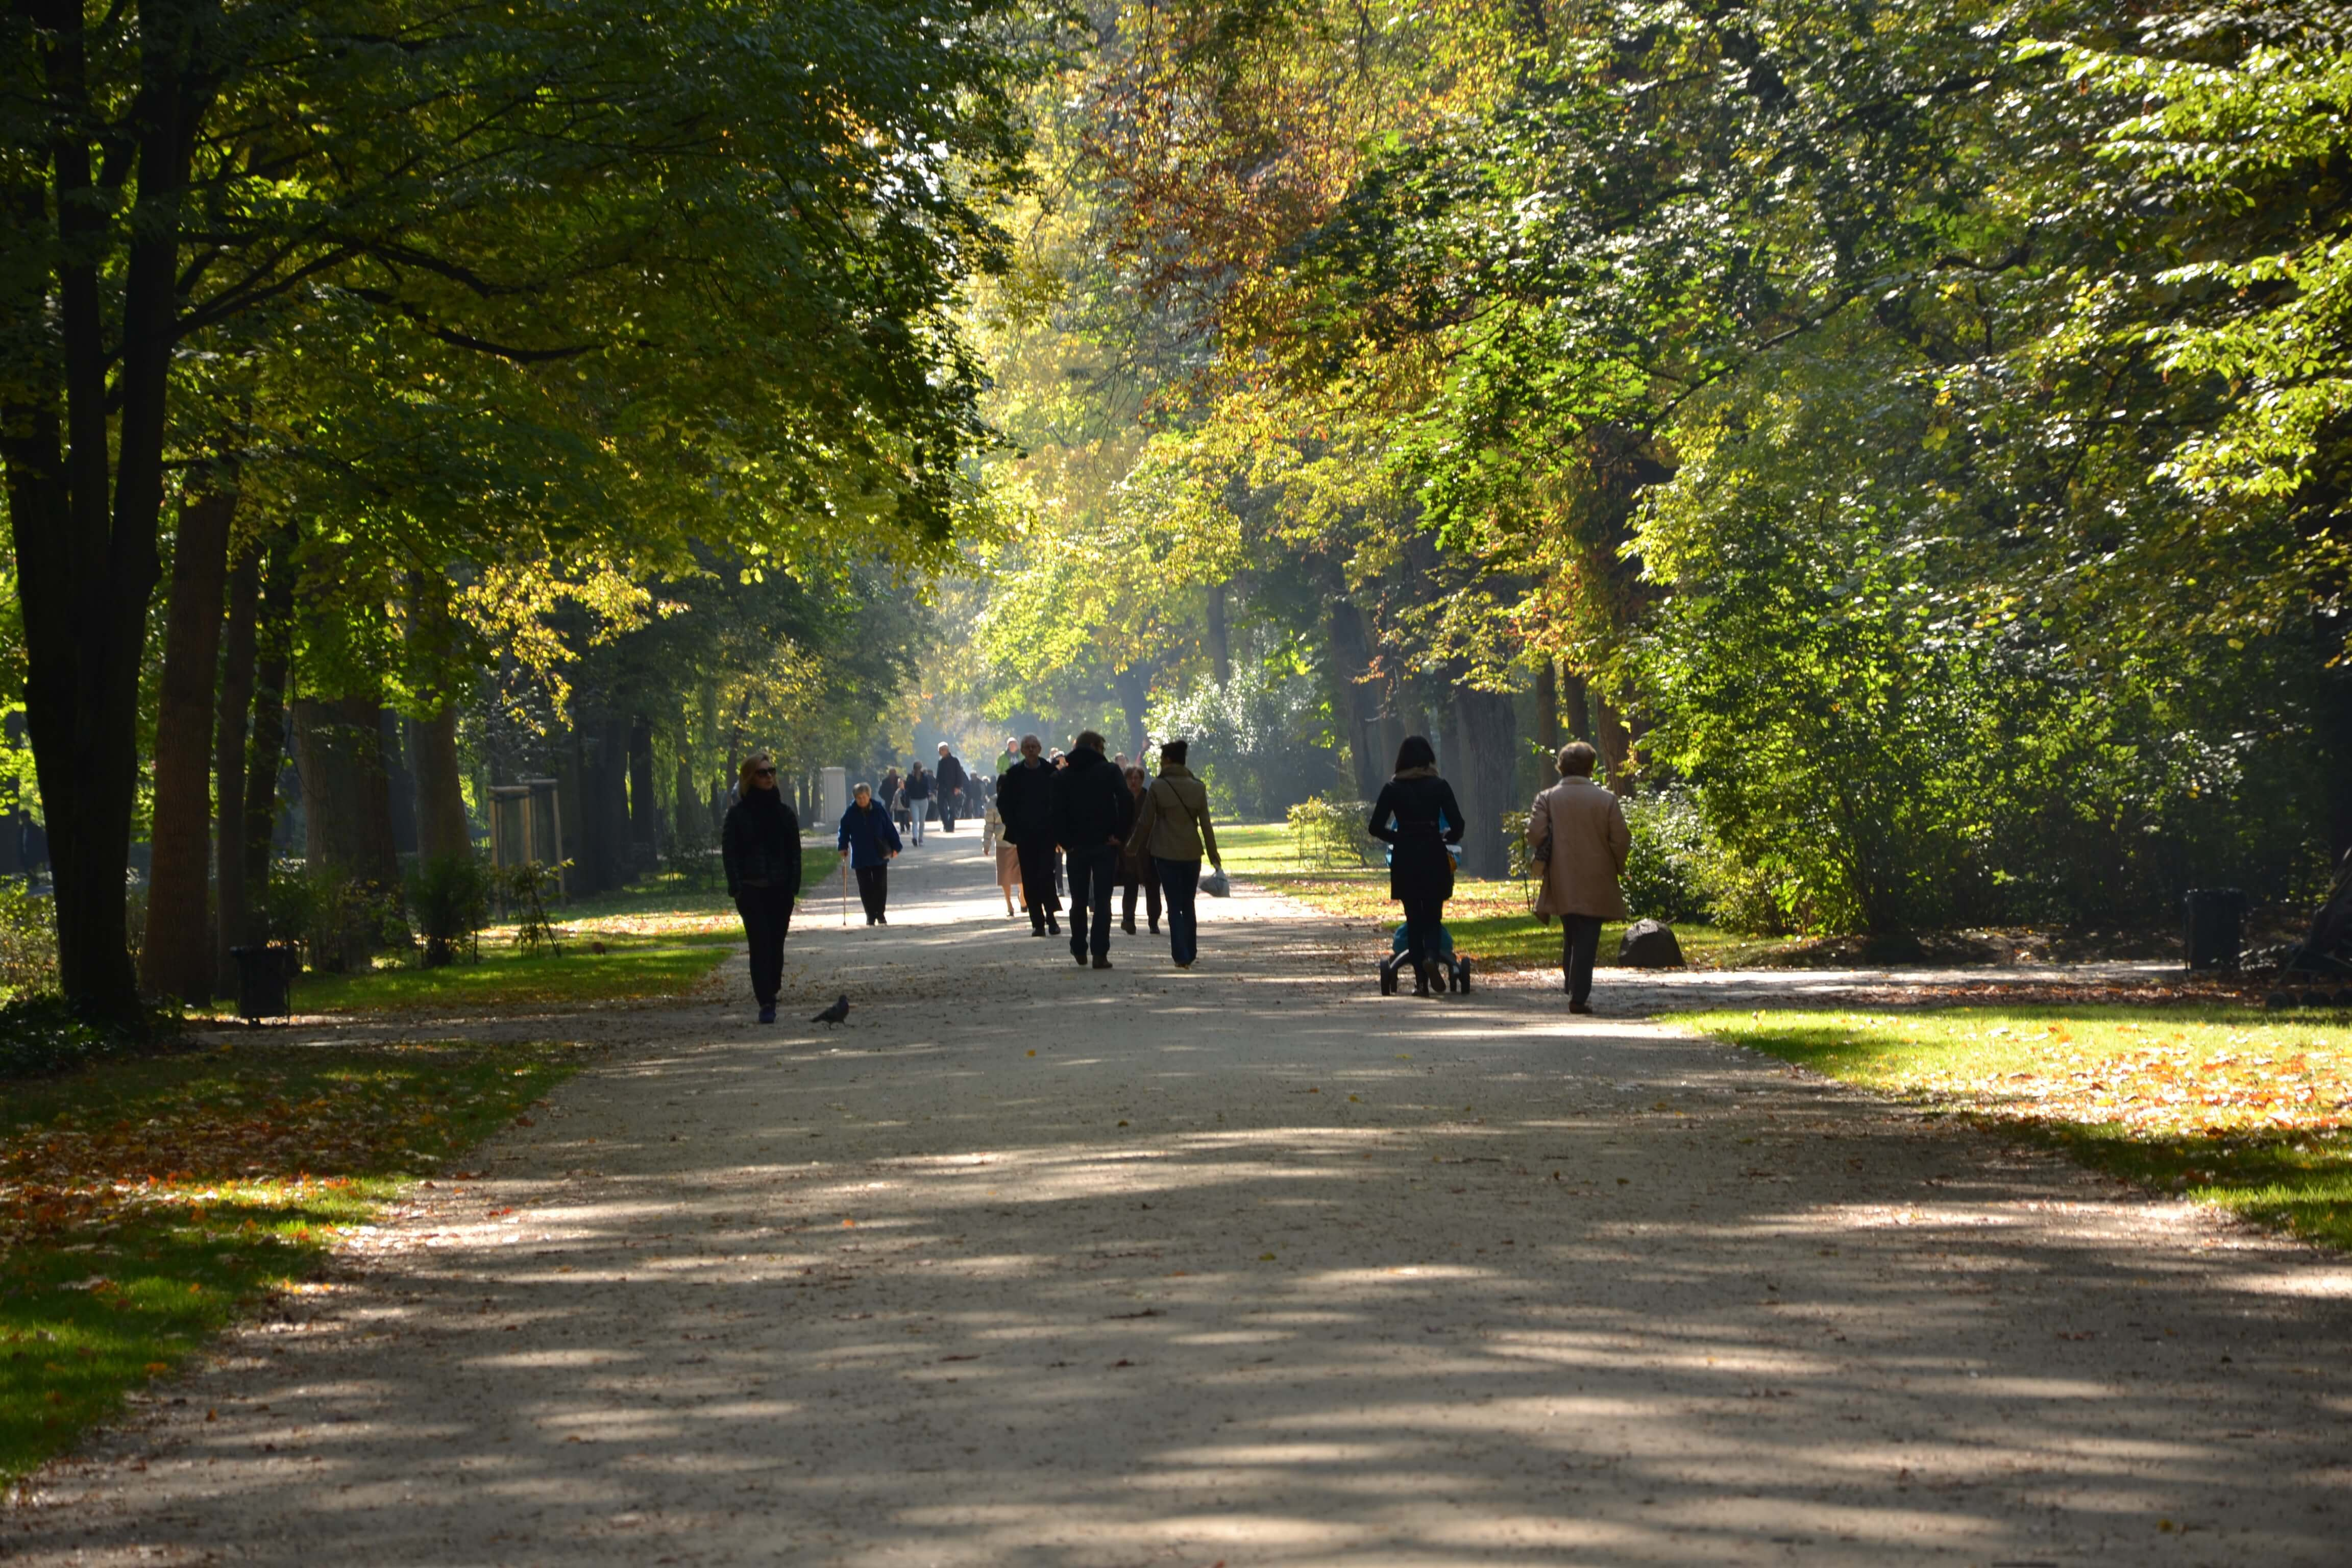 trees, people walking on a path in a park